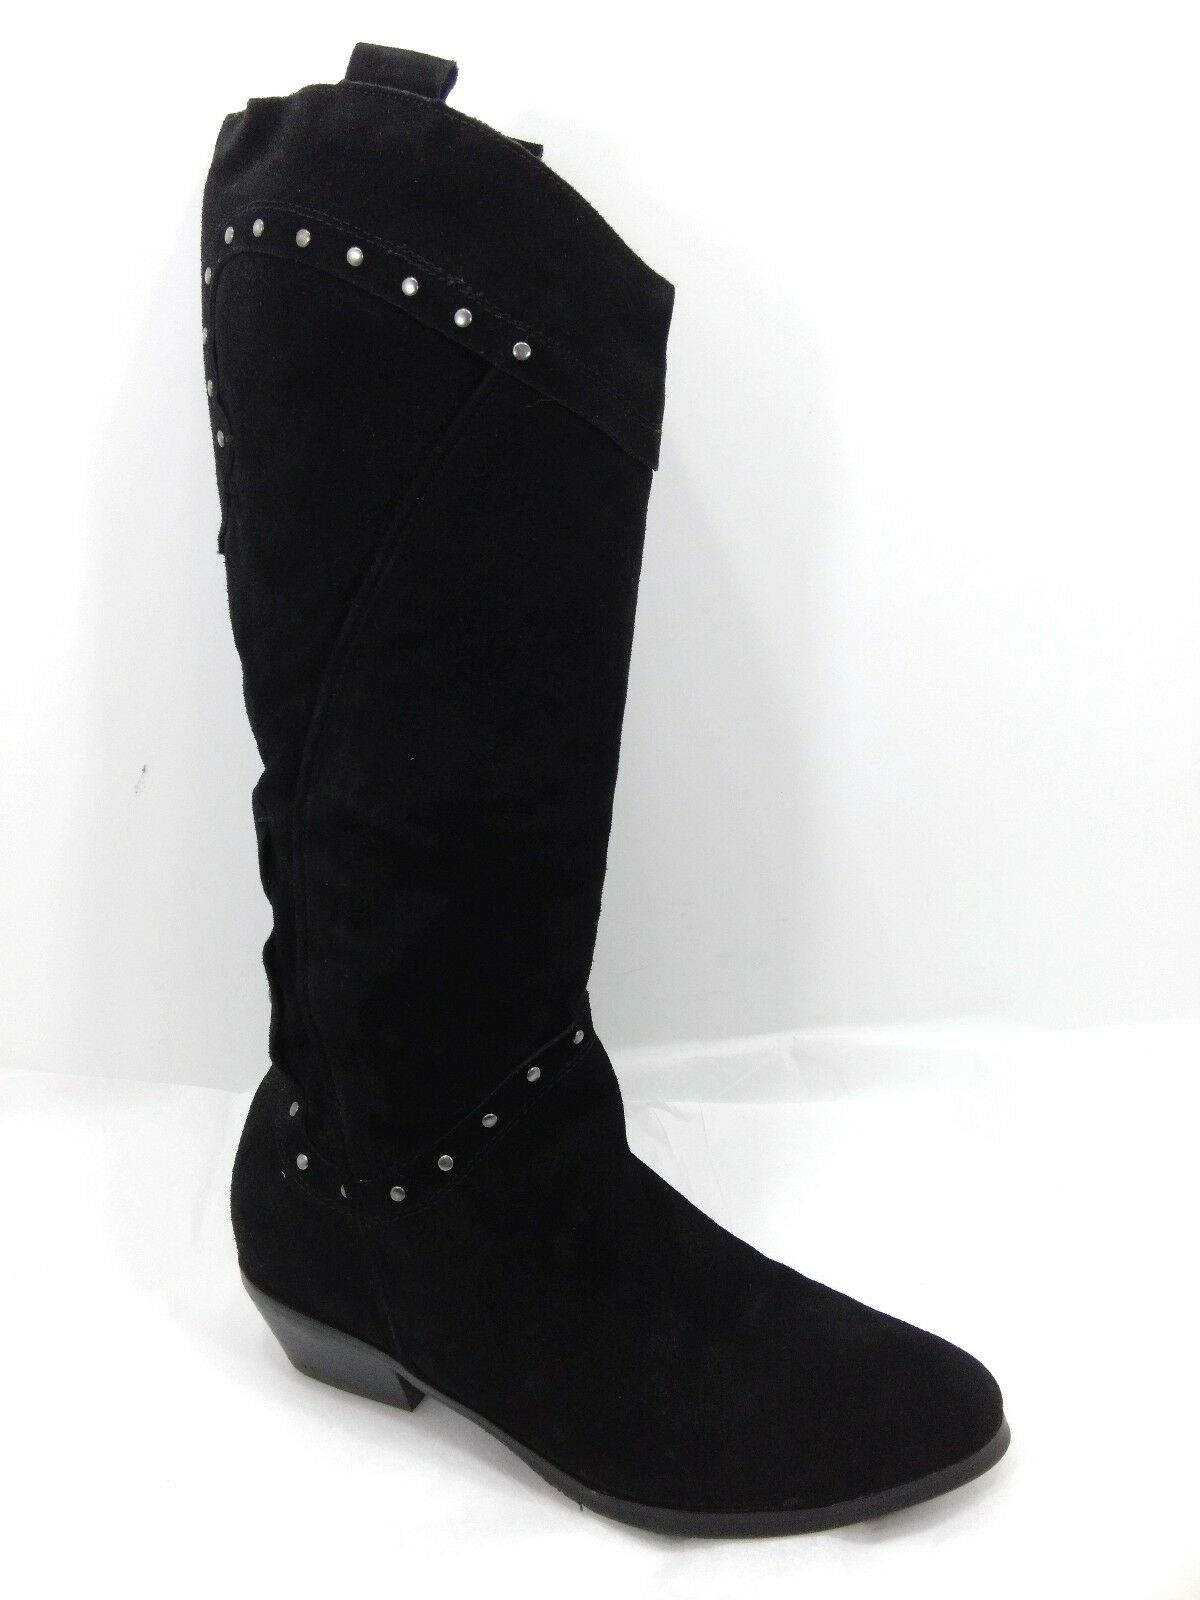 Women's Reba Boots Knee High Black Suede Leather Studs Sz 6.5 M